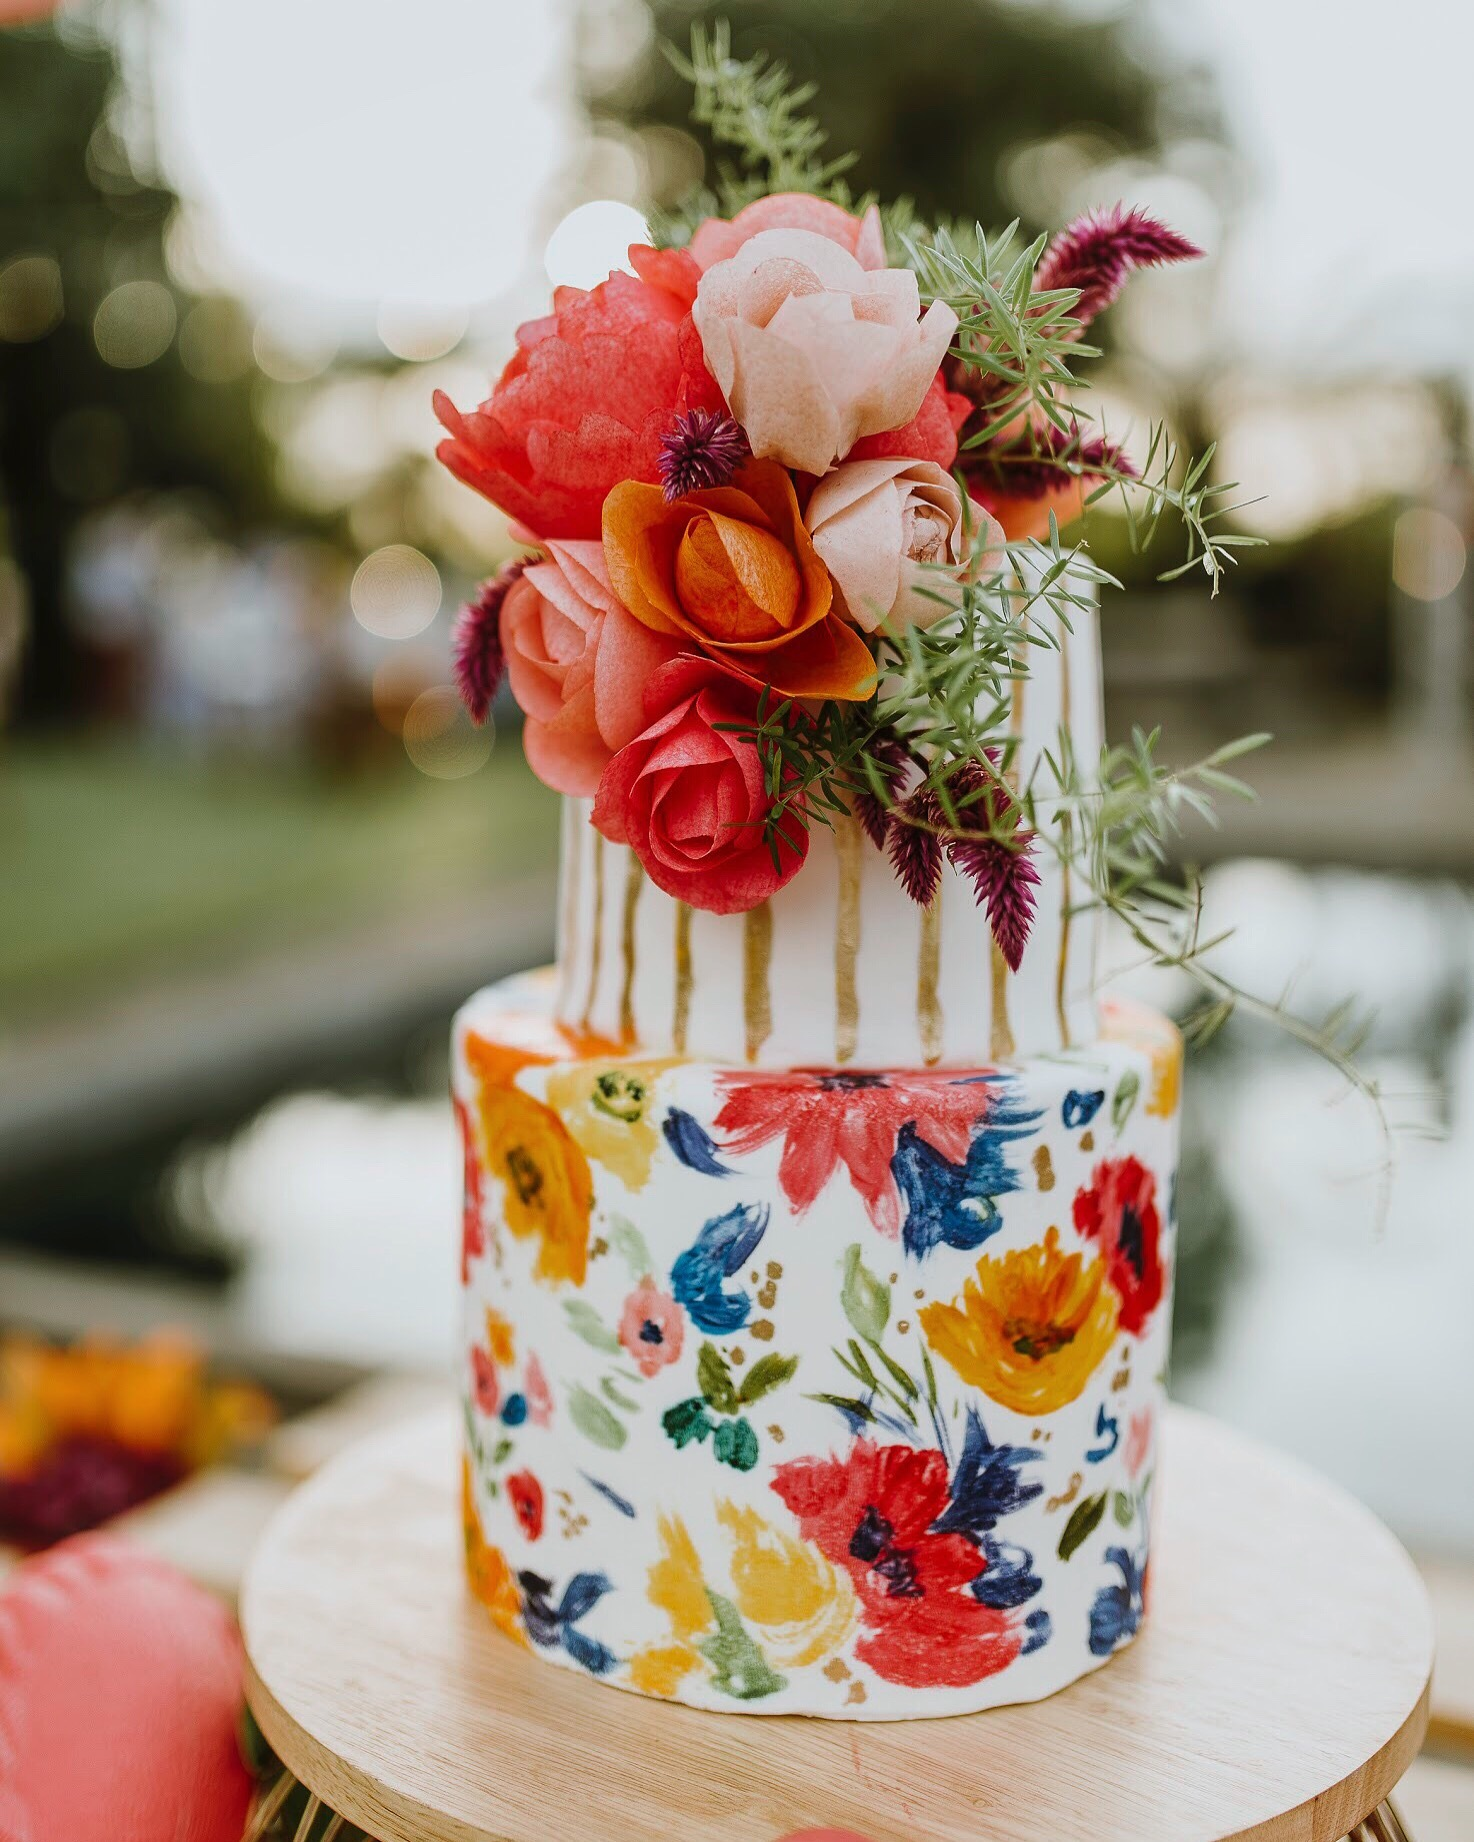 White fondant cake with hand-painted bright florals